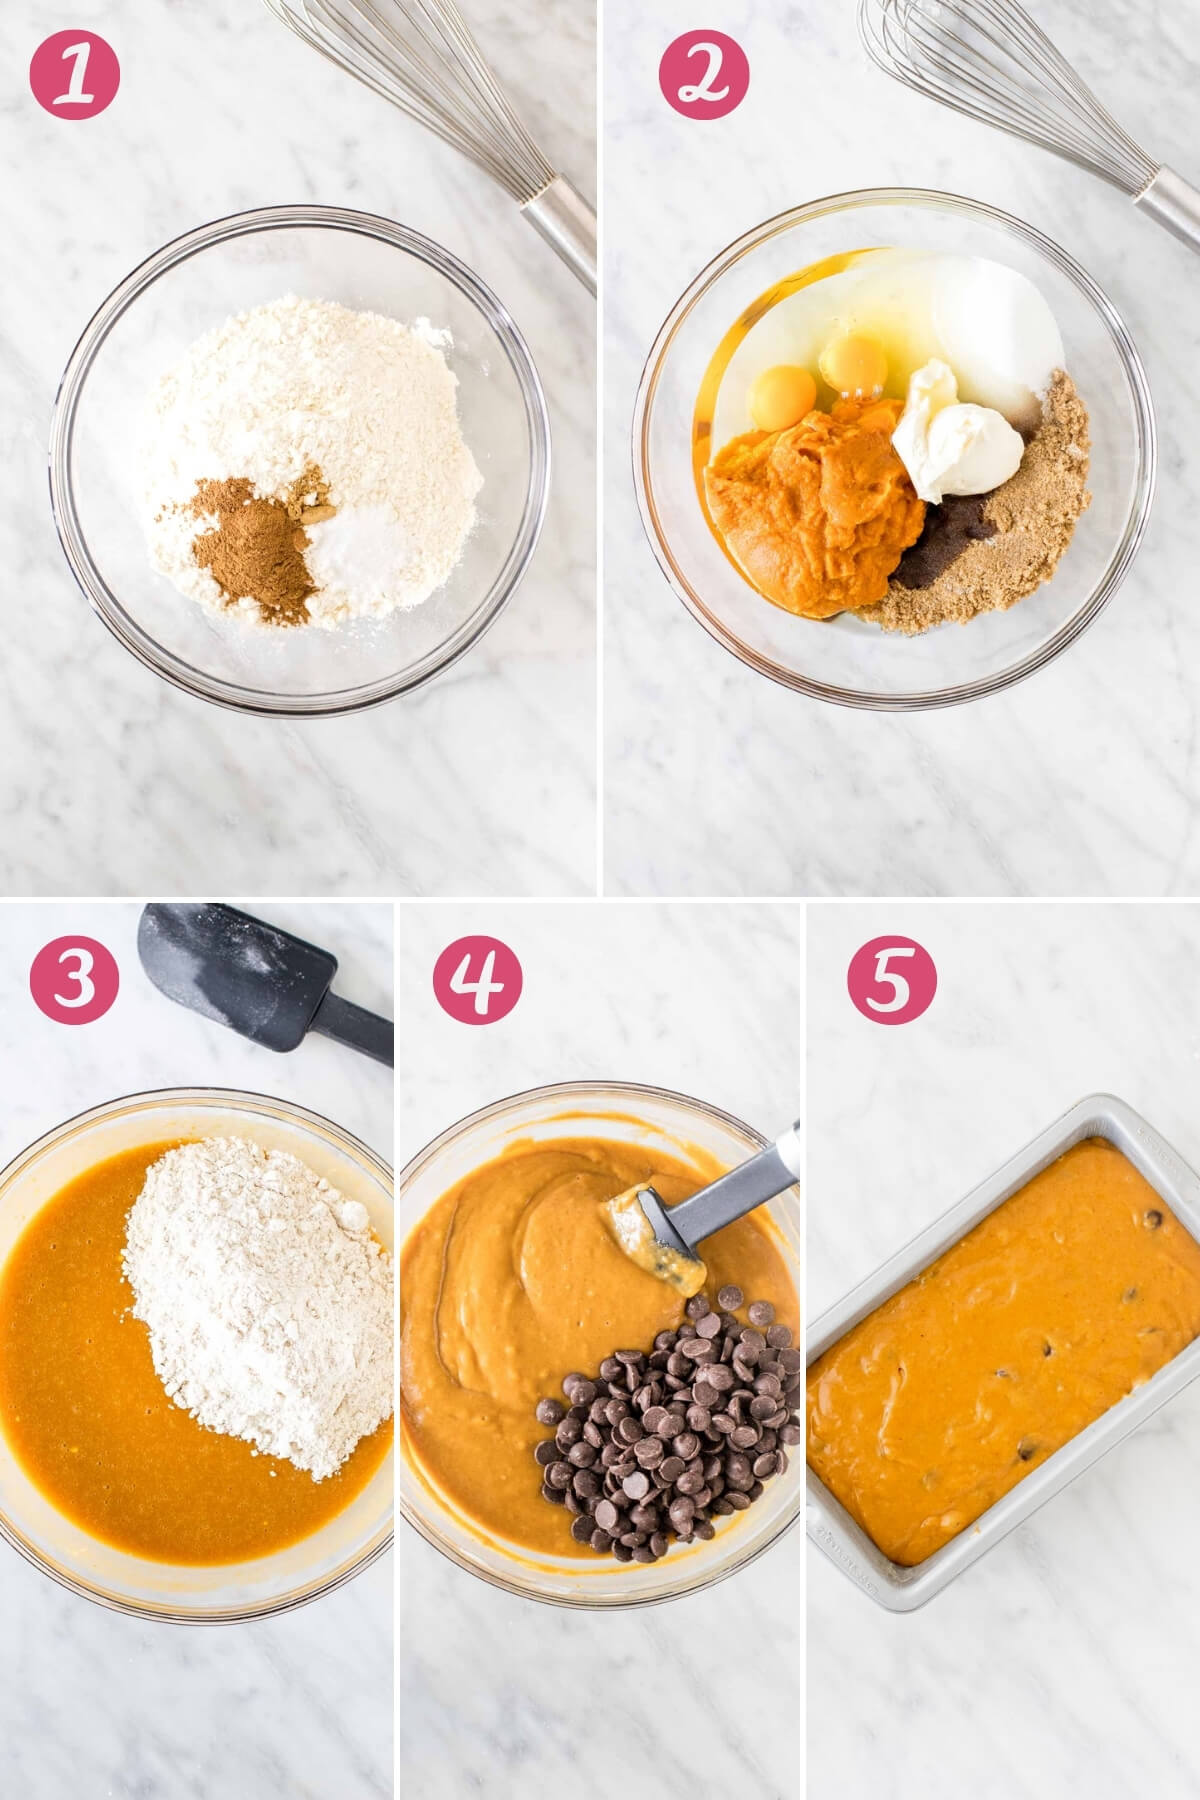 Collage of 5-step process for making pumpkin bread.